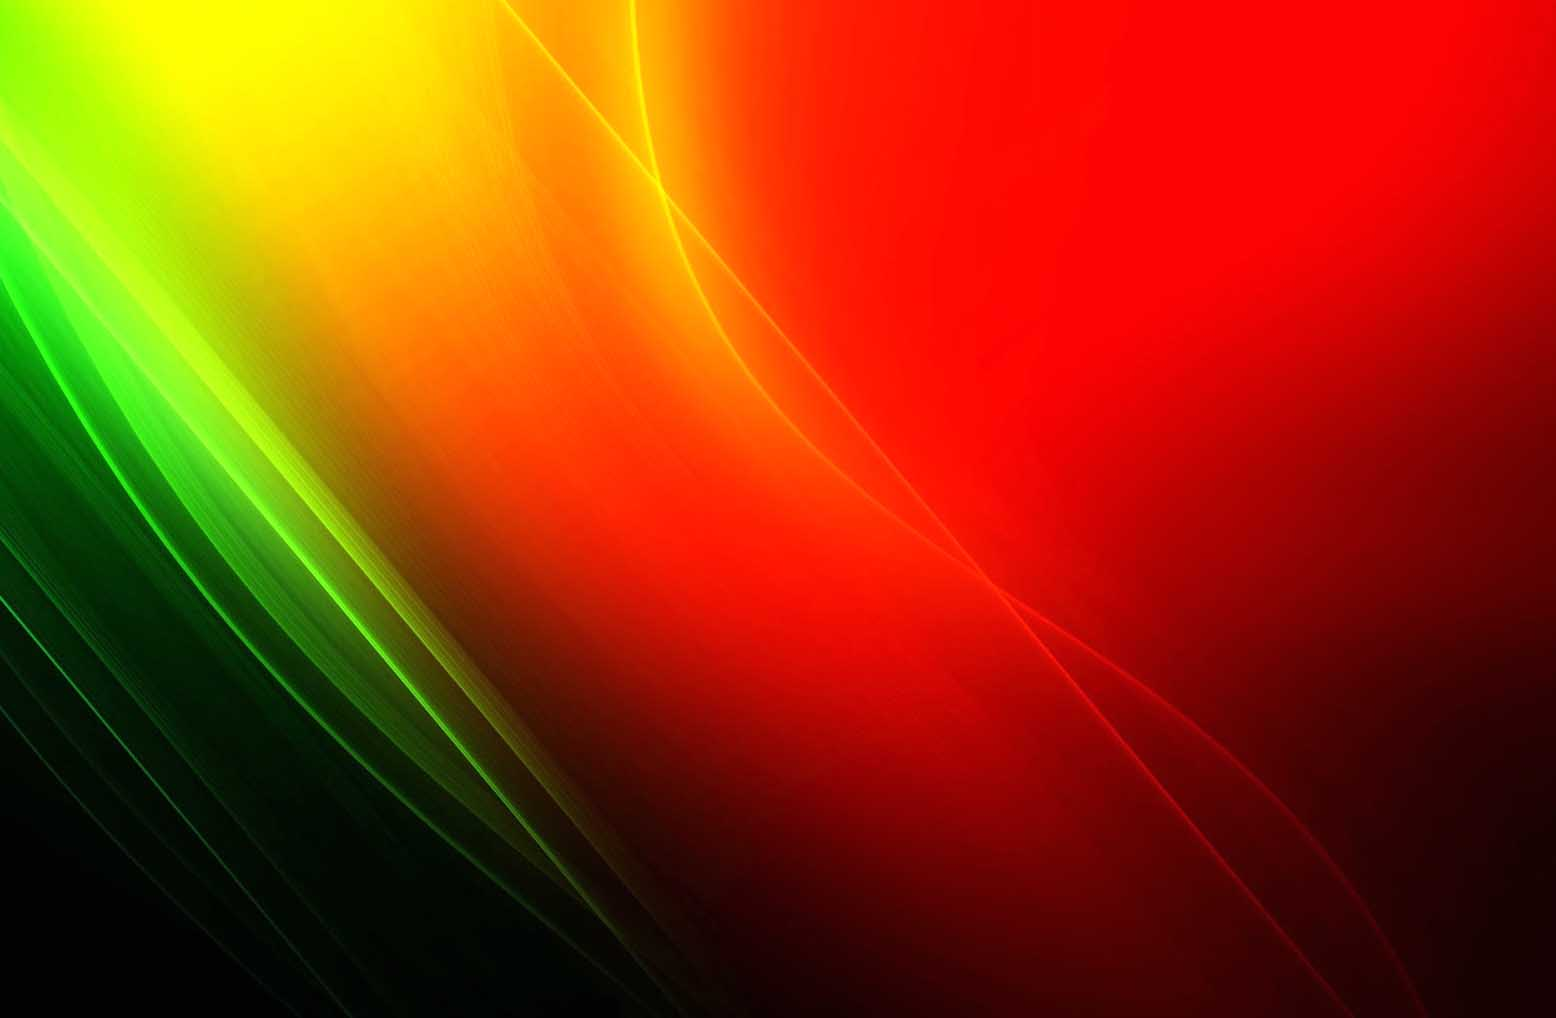 wallpaper live downloads wallpapers trendingspace 1556x1018